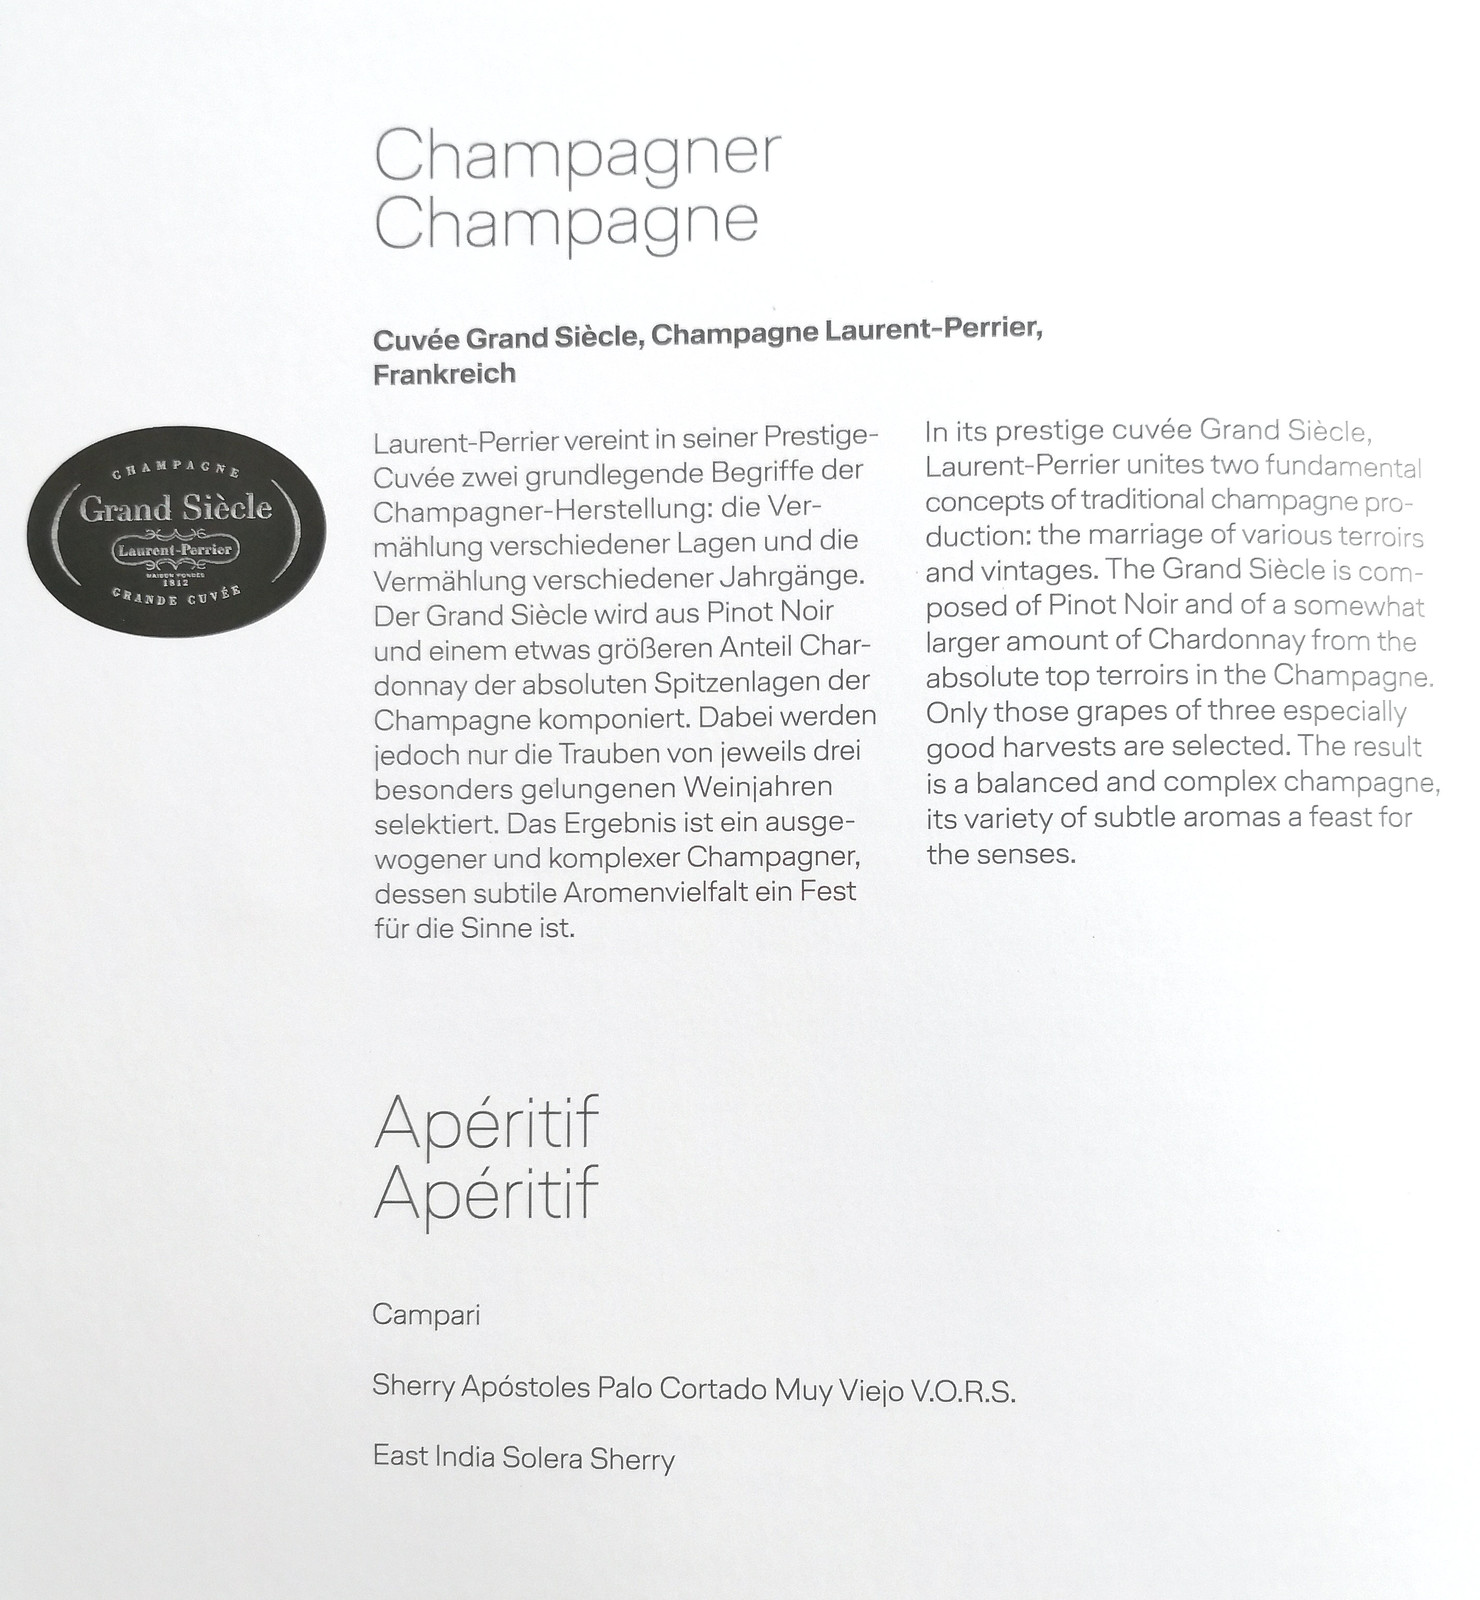 Champagne and apéritif